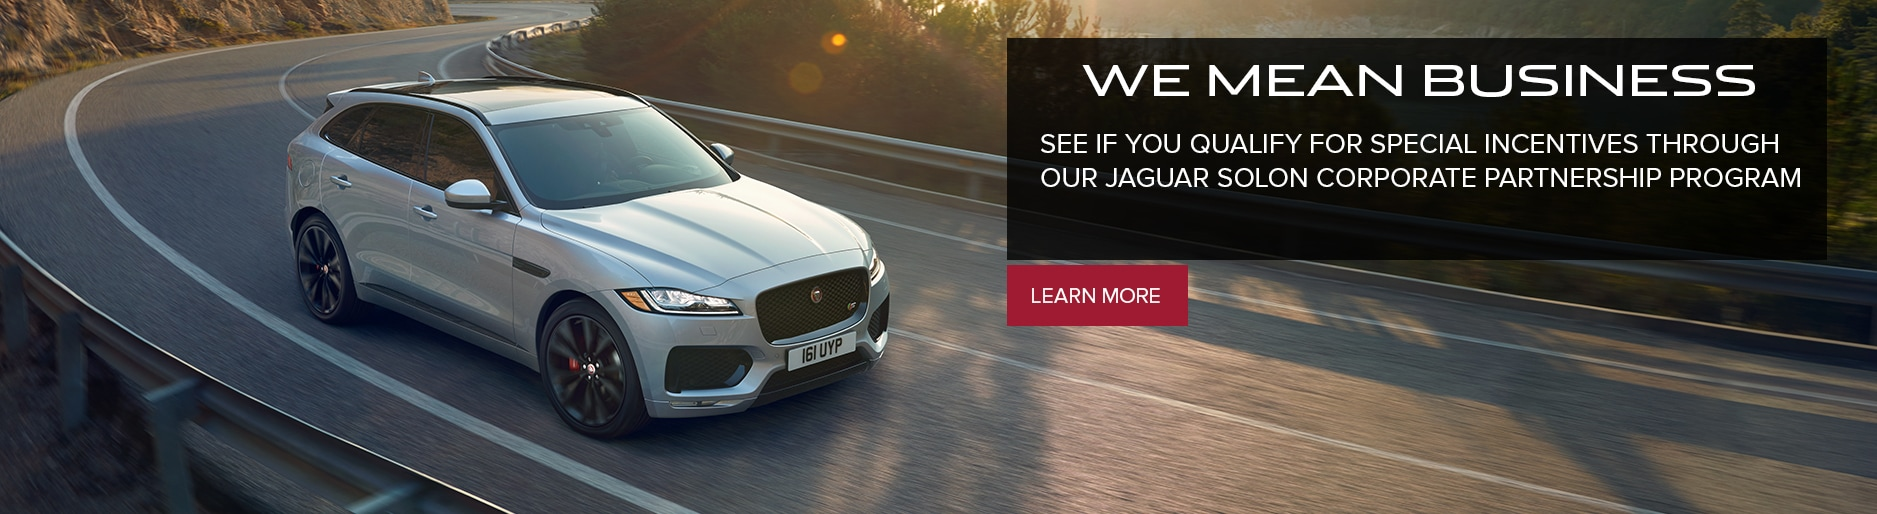 jaguar dealers in ugc leicester business car sturgess atoz new used